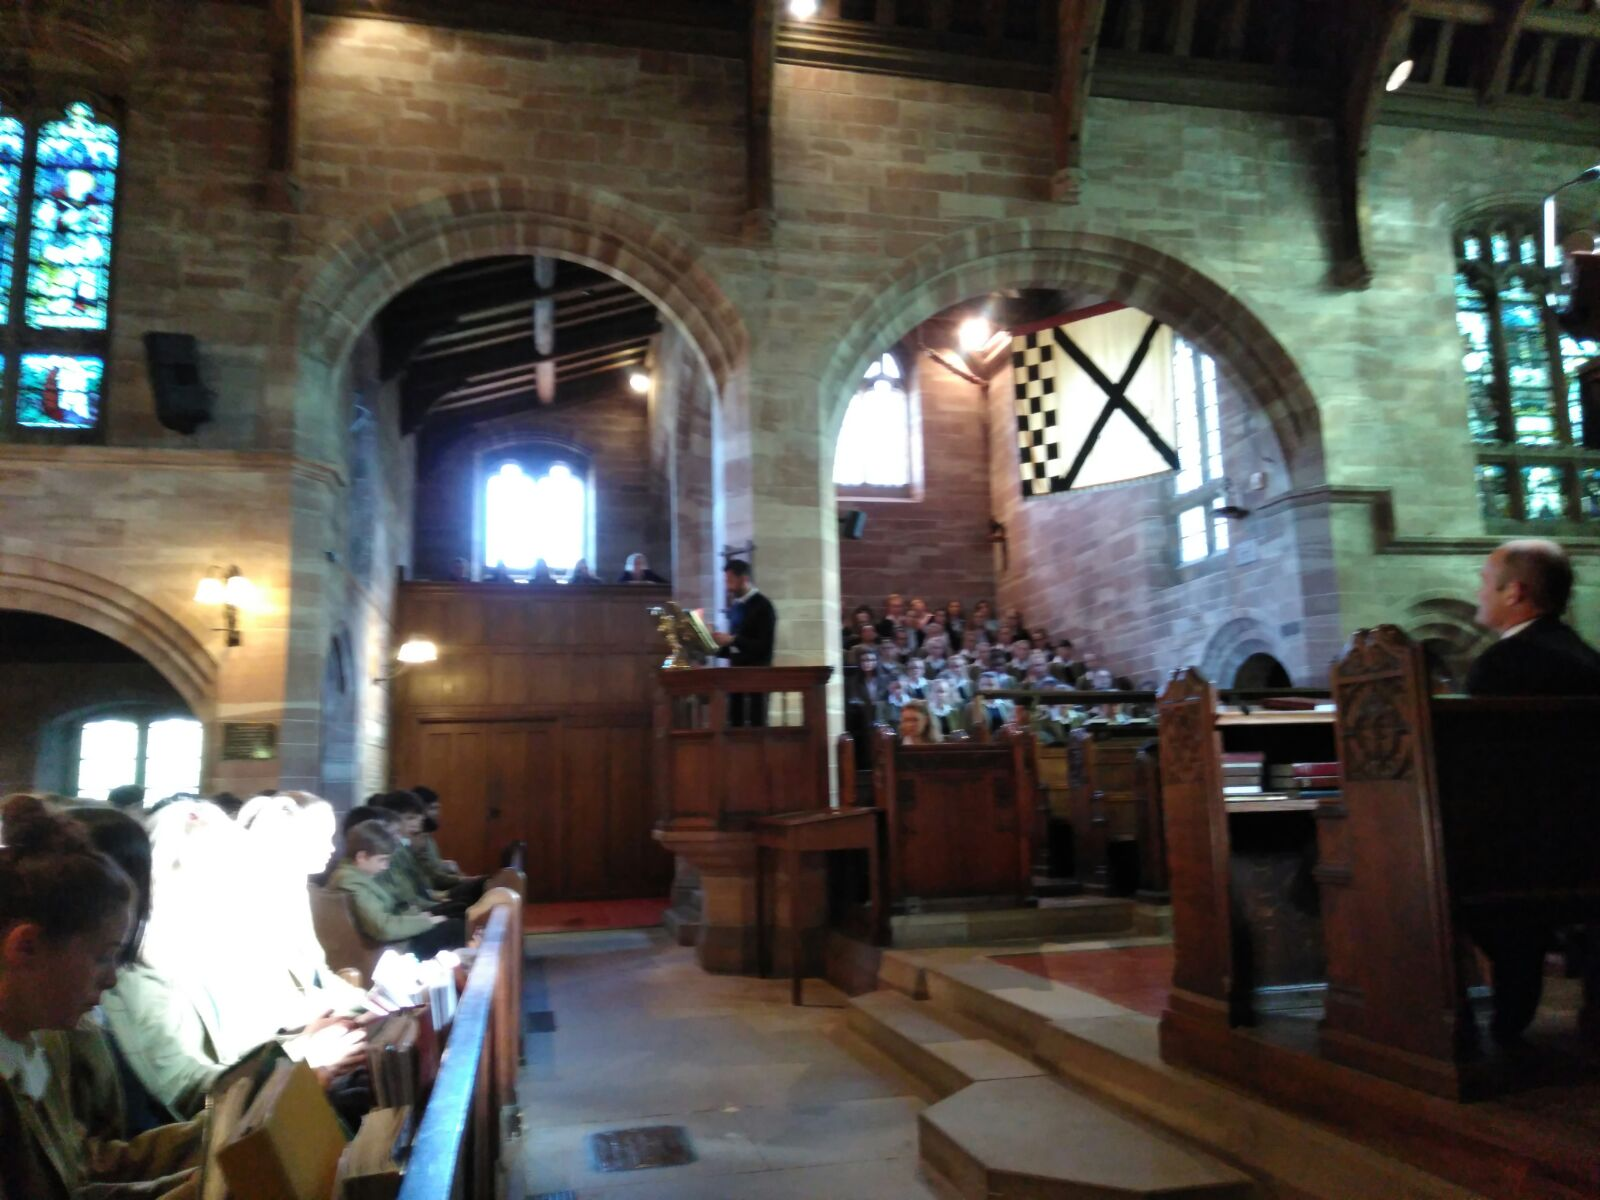 … and action… Ben at the pulpit preaching the gospel of the #Plasticrevolution